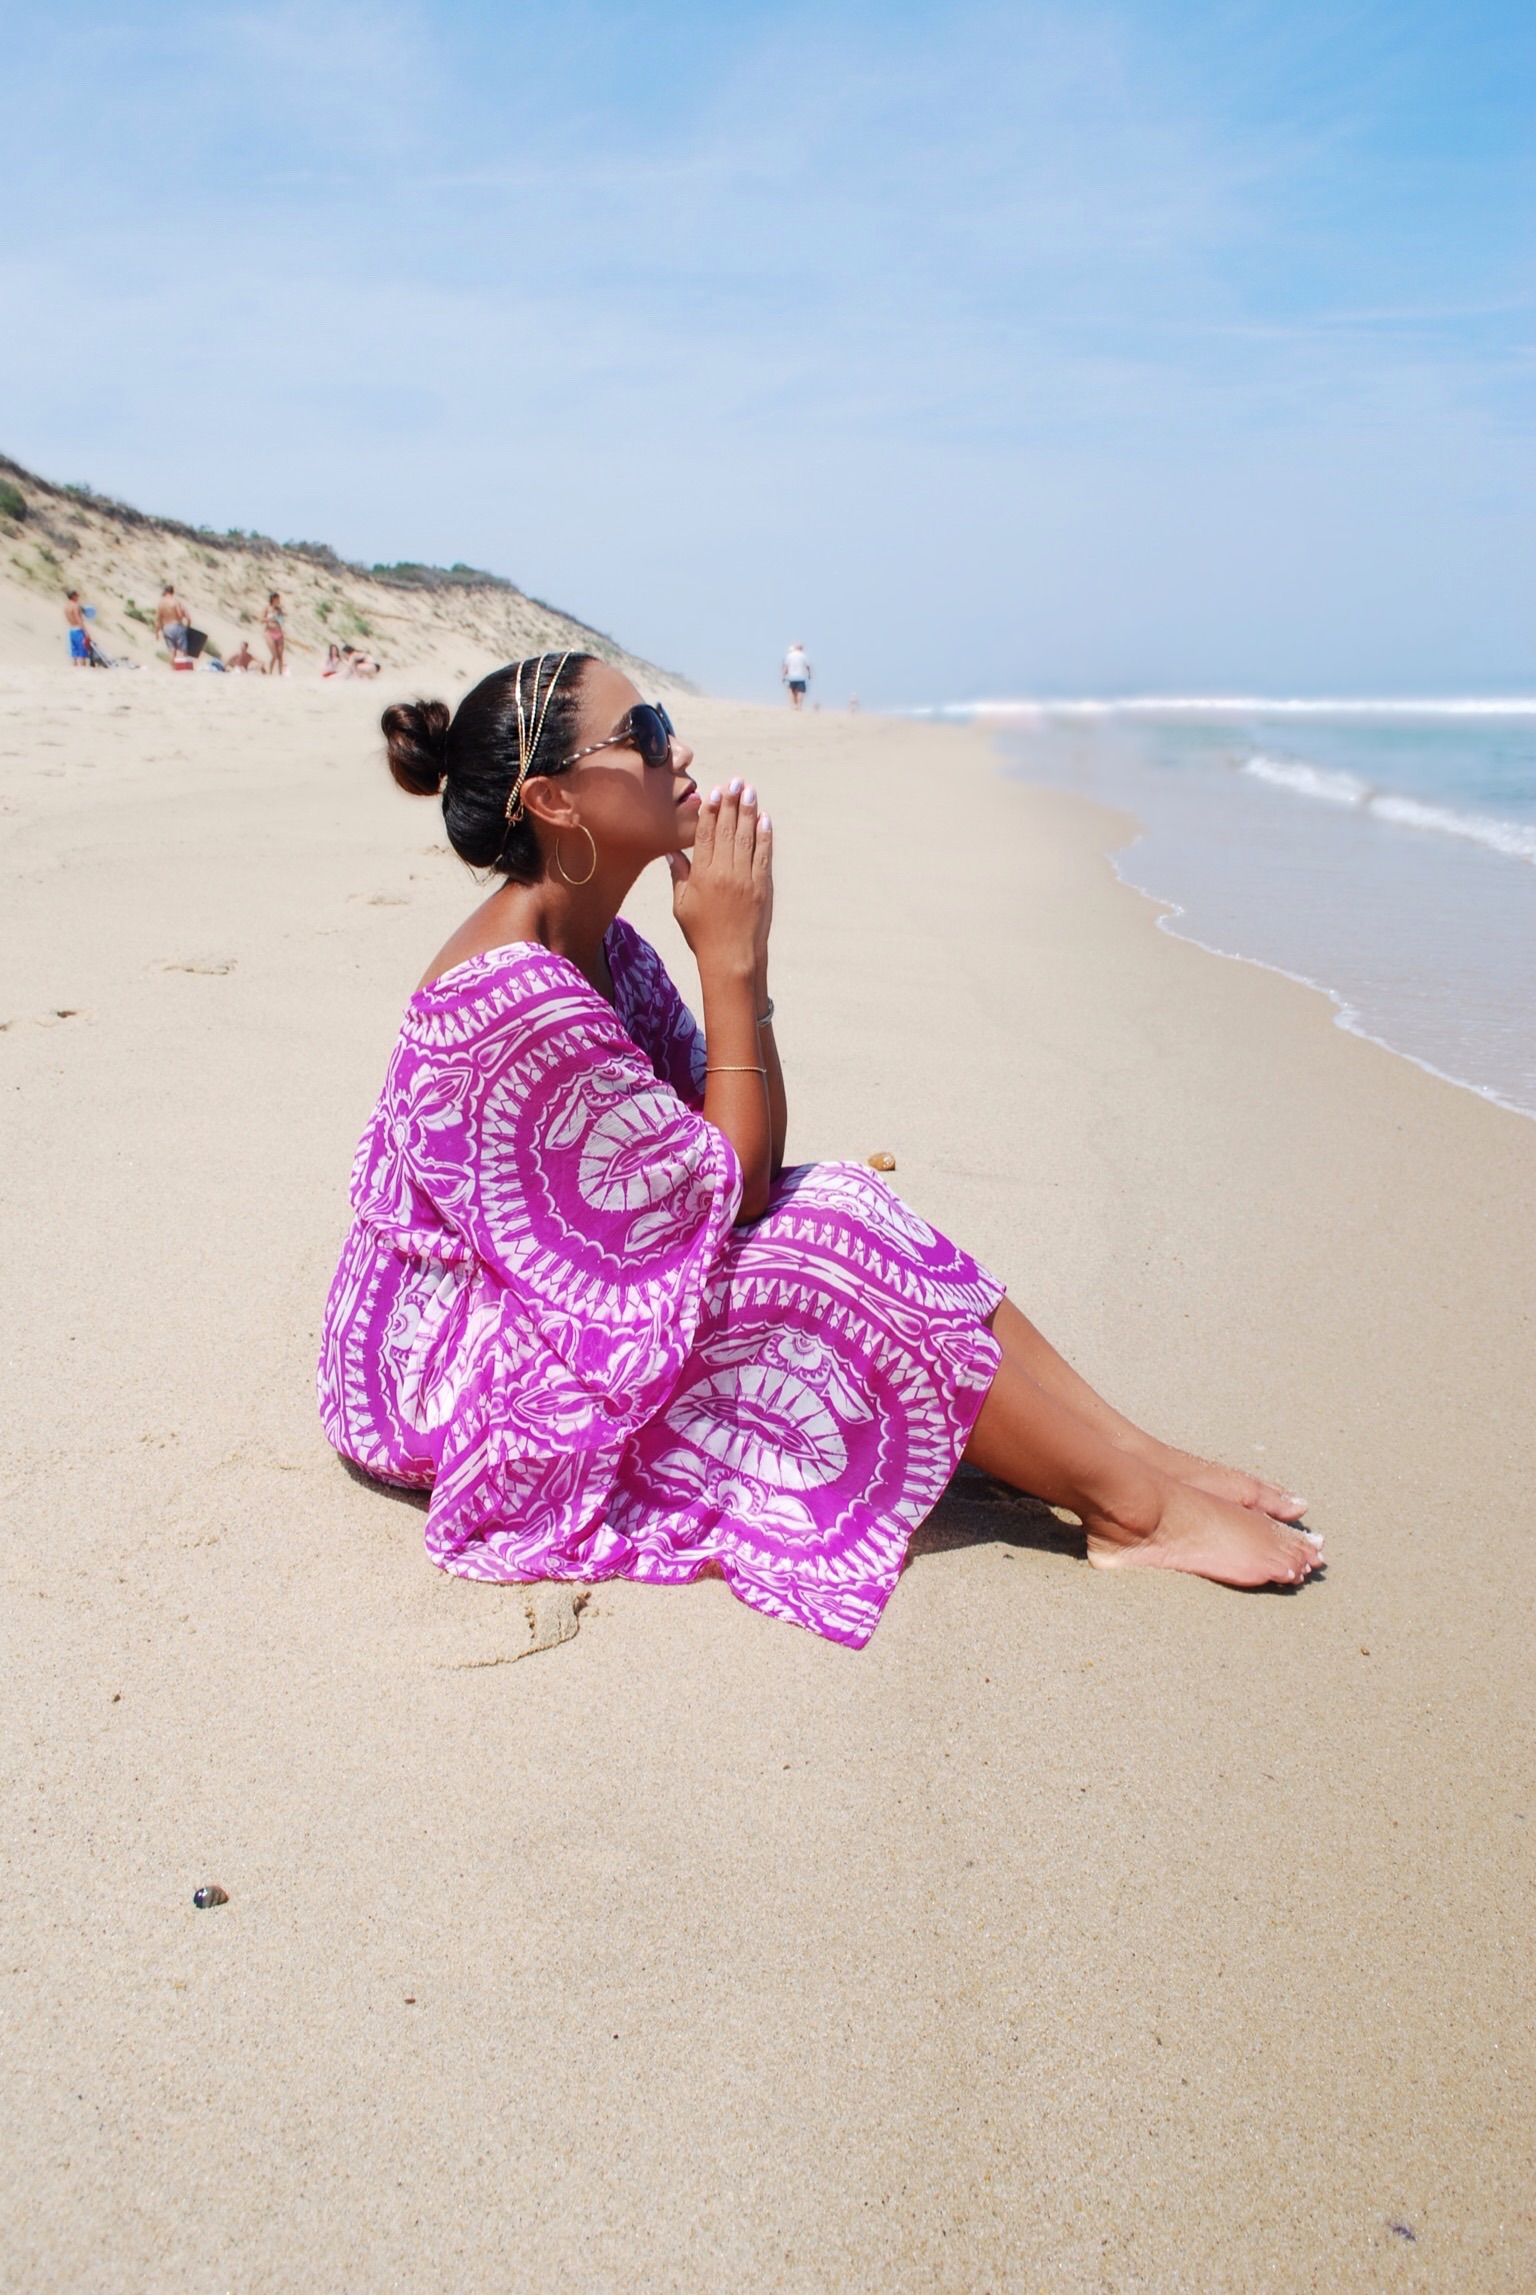 Swim cover up on the beach